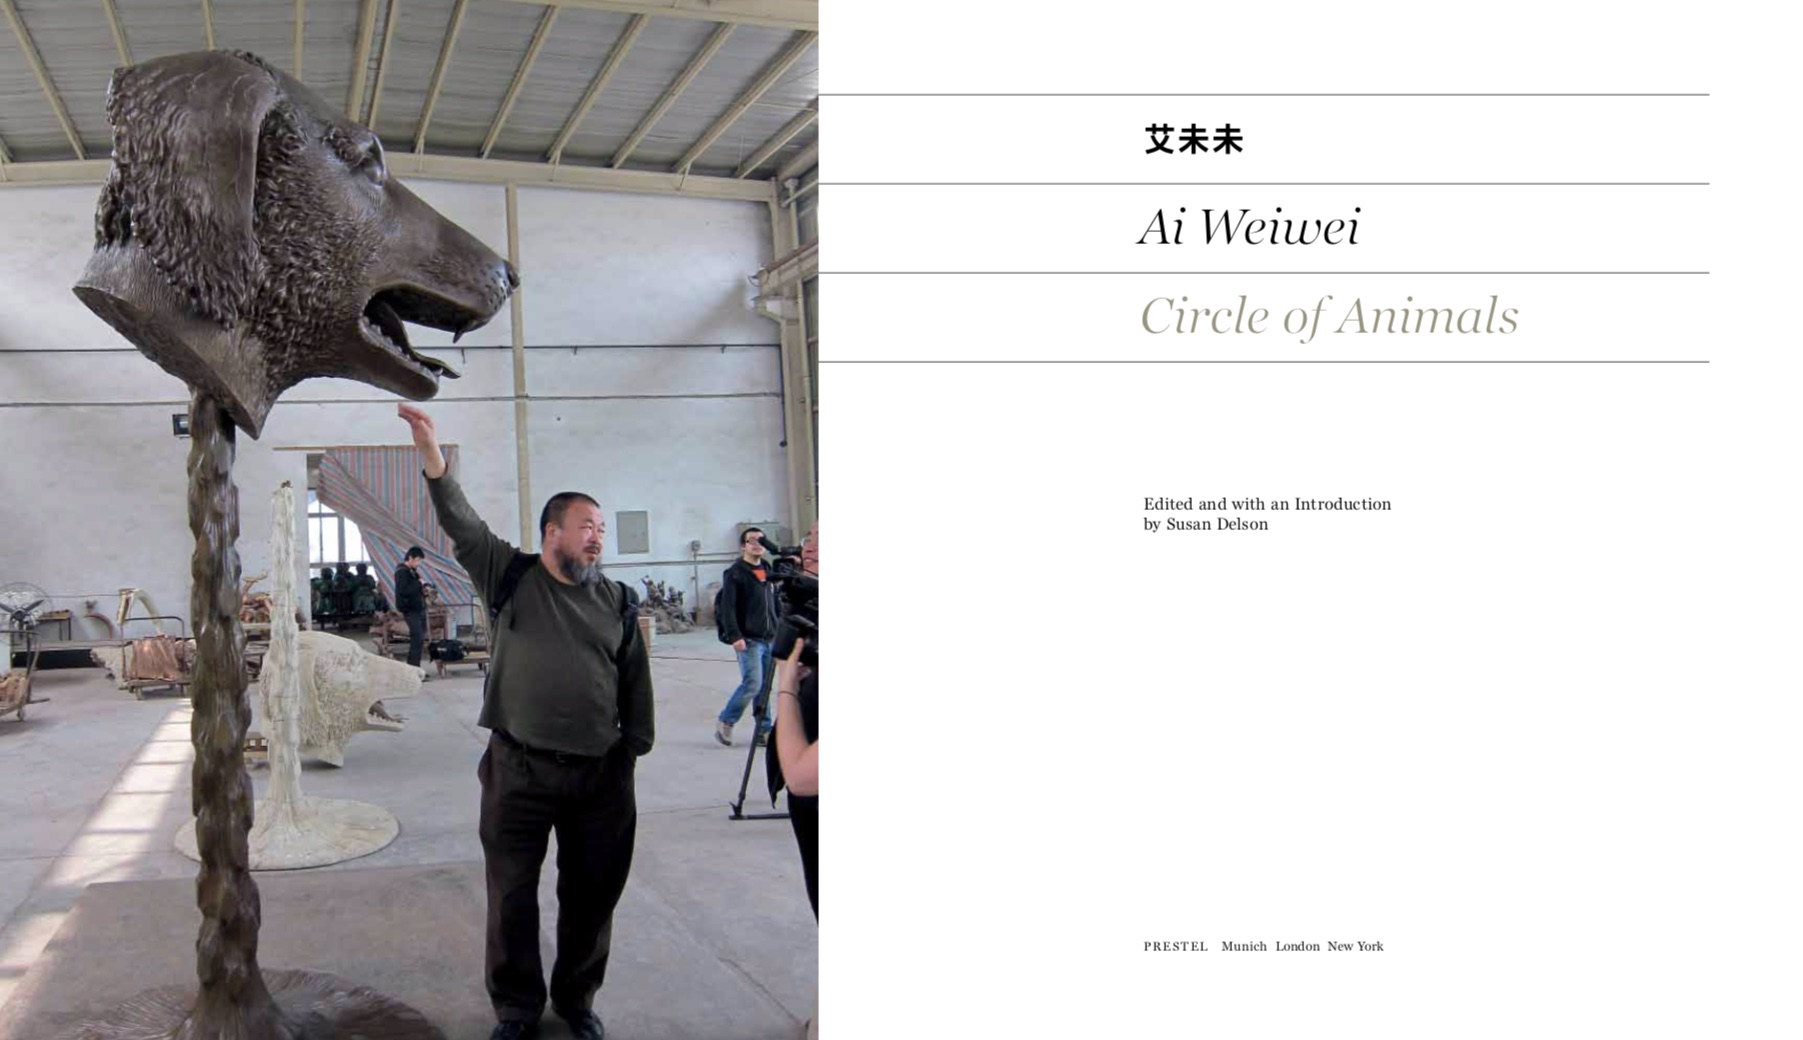 Prestel_AWW_CircleofAnimals_title-spread